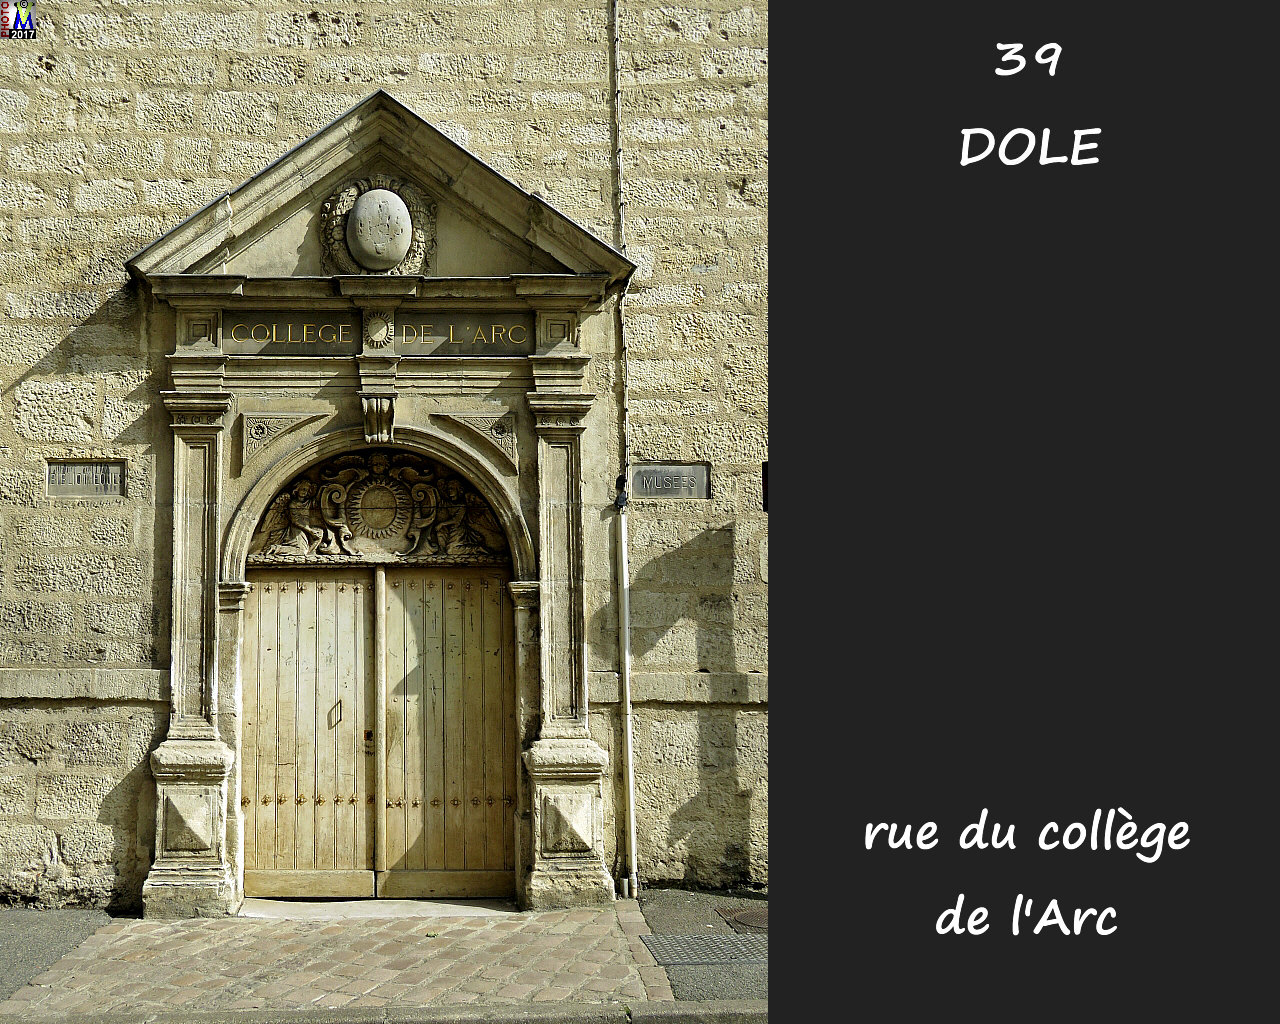 39DOLE_rue-college-Arc-100.jpg